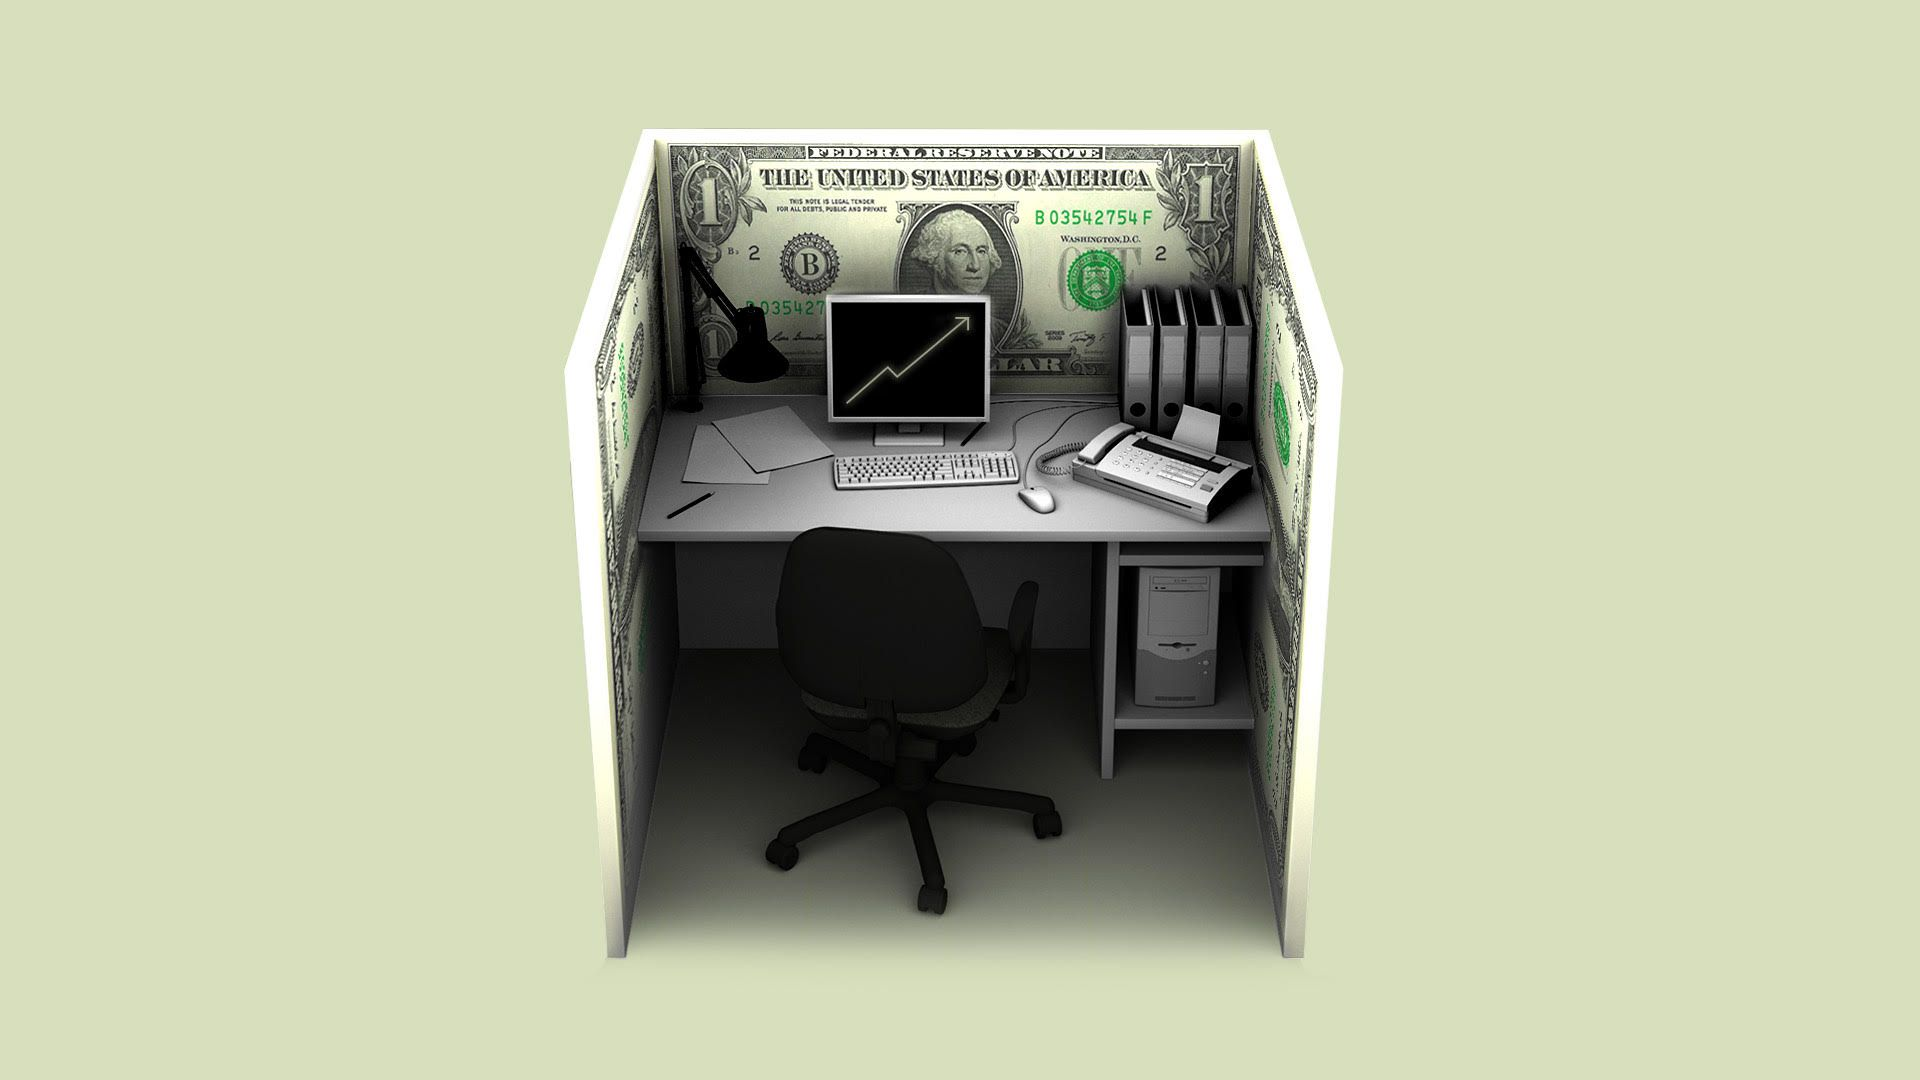 Illustration of  a cubicle made of money.